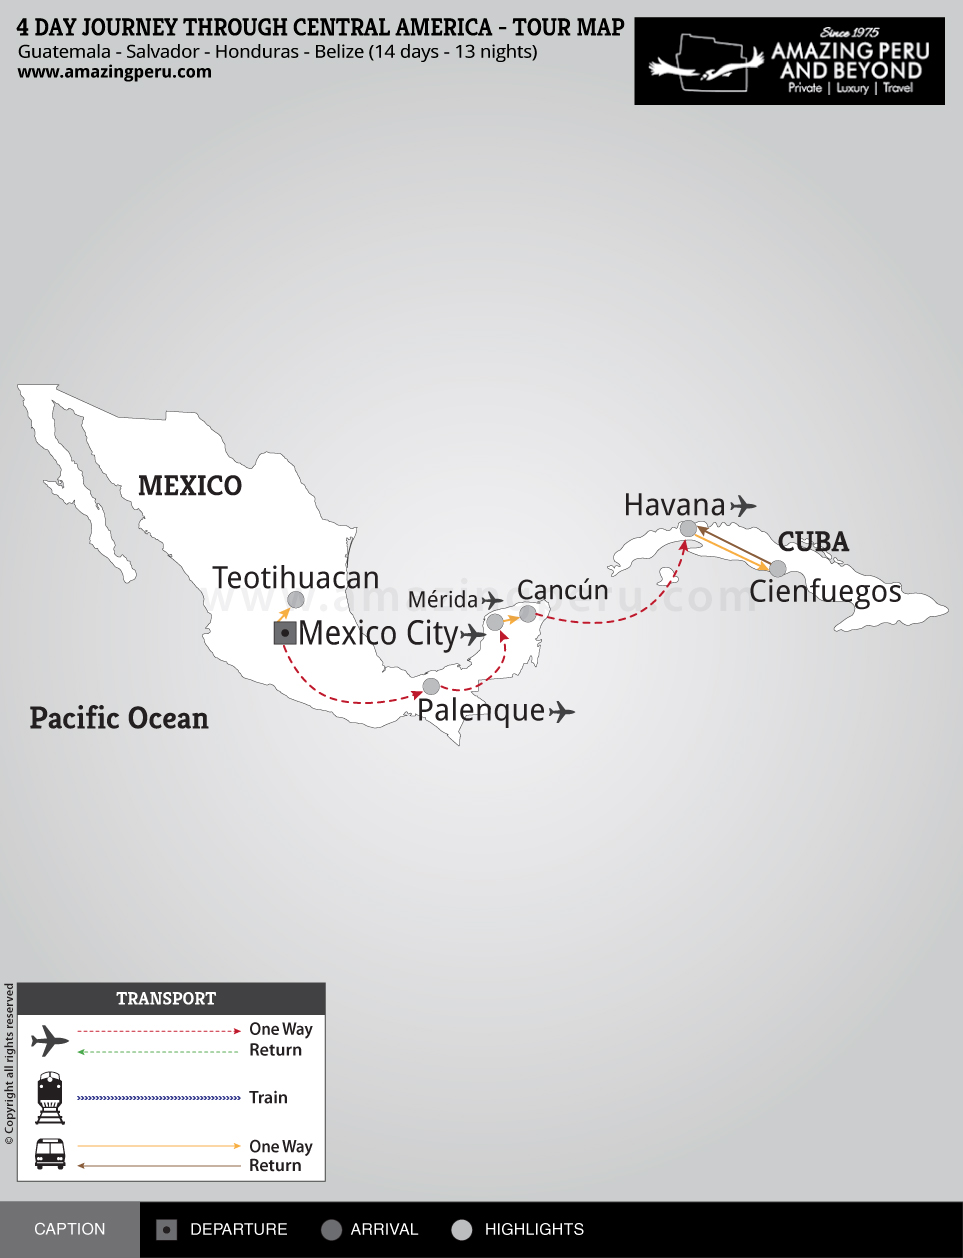 14 day Journey through Central America - 14 days / 13 nights.